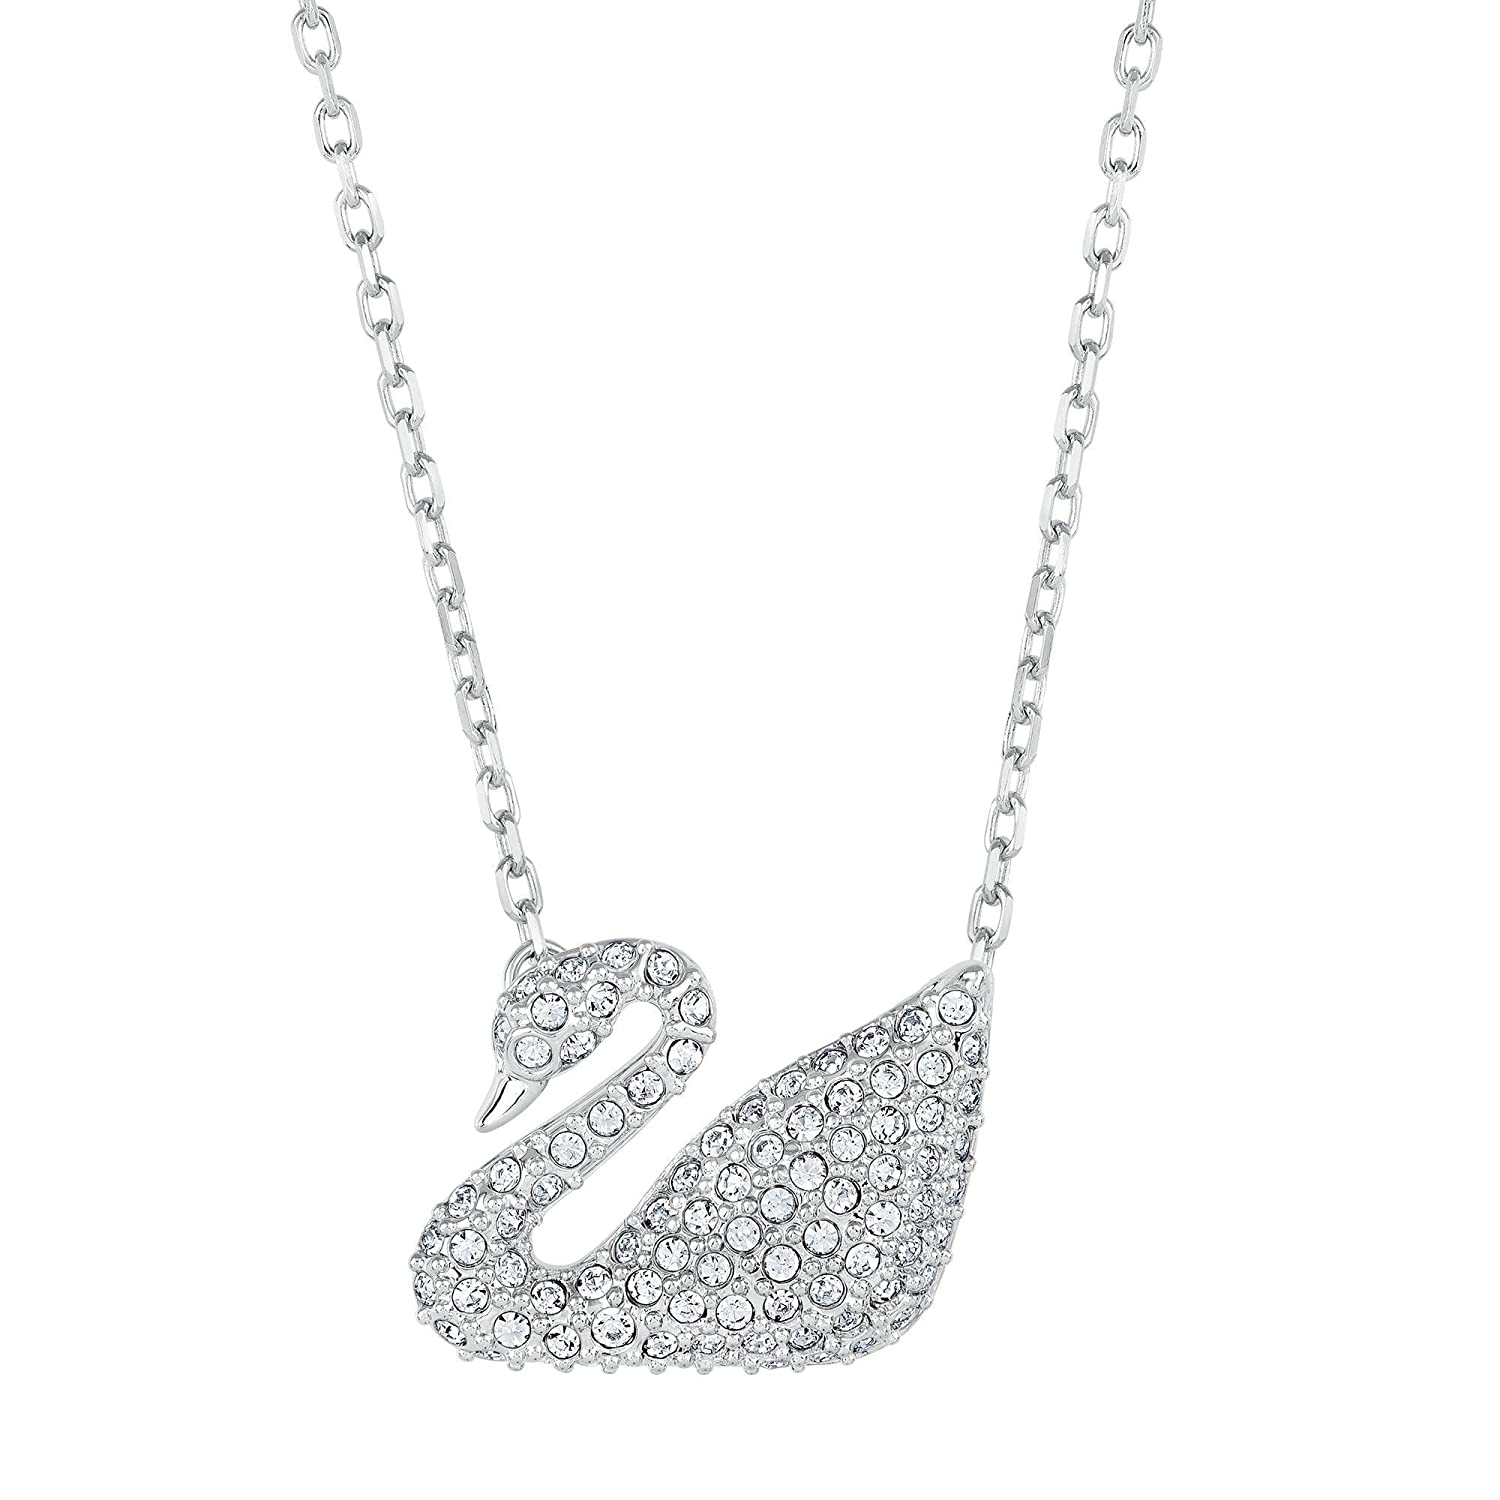 Swarovski Crystal Swan Necklace